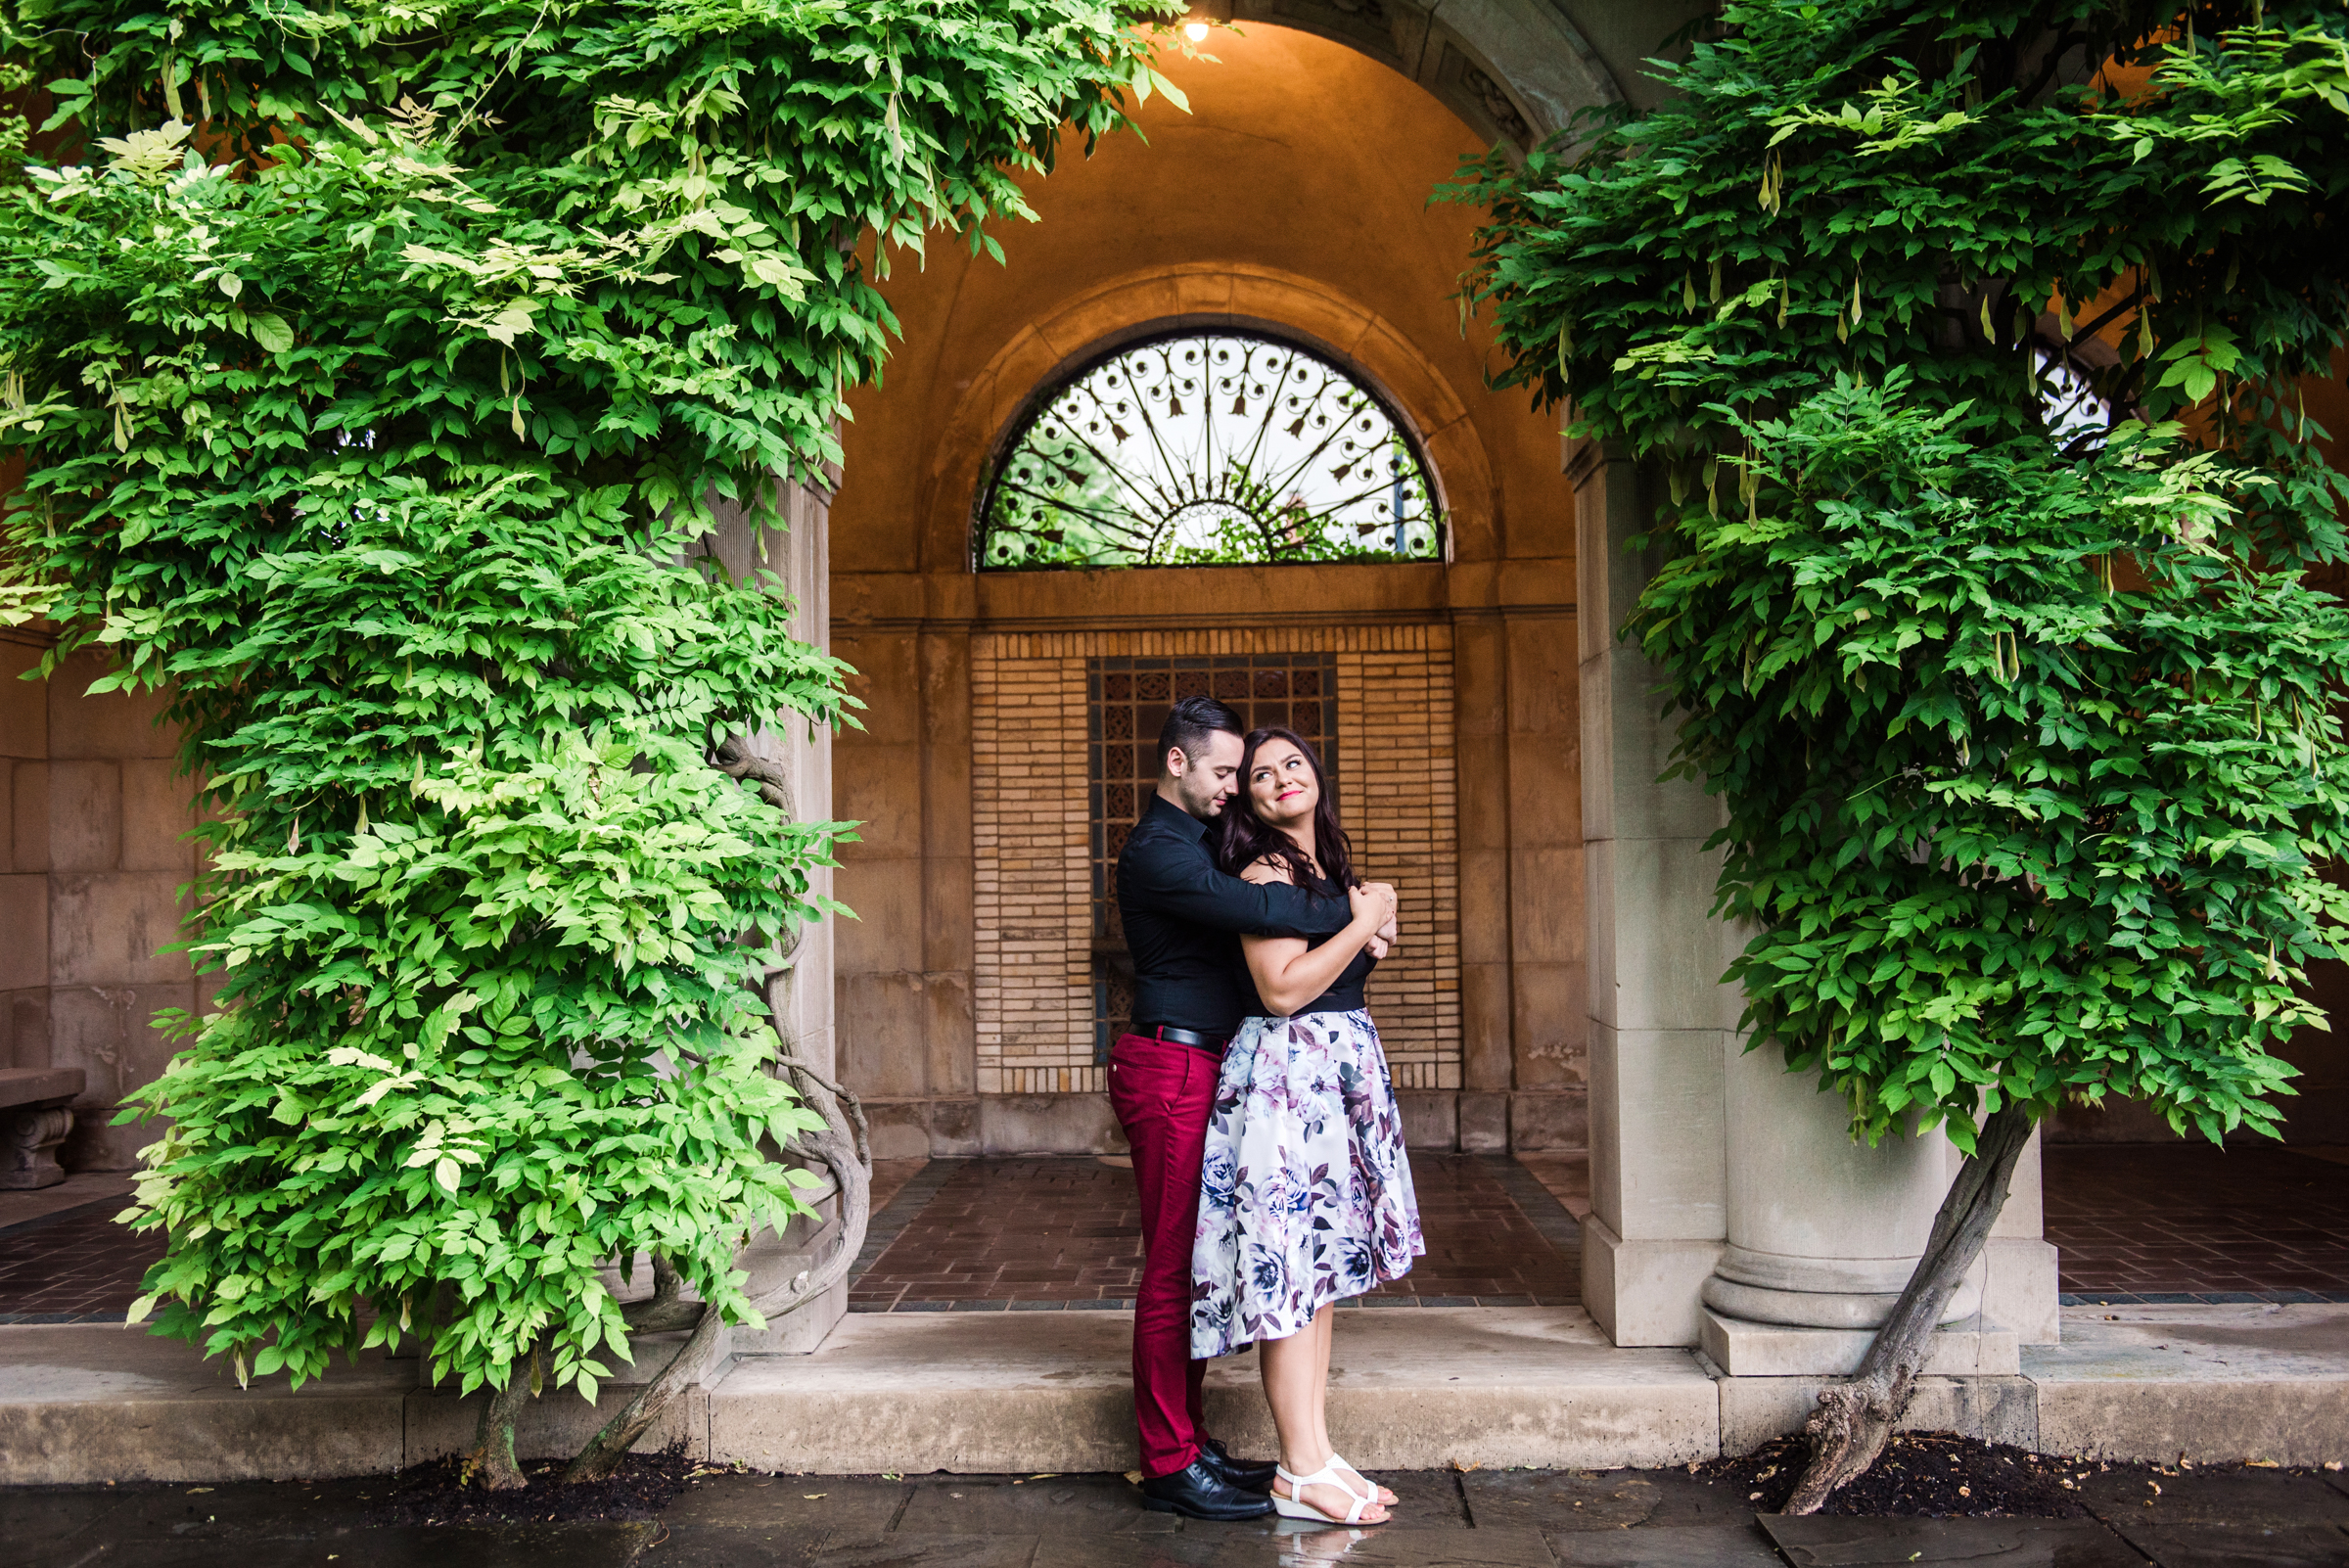 George_Eastman_House_Rochester_Engagement_Session_JILL_STUDIO_Rochester_NY_Photographer_DSC_6372.jpg